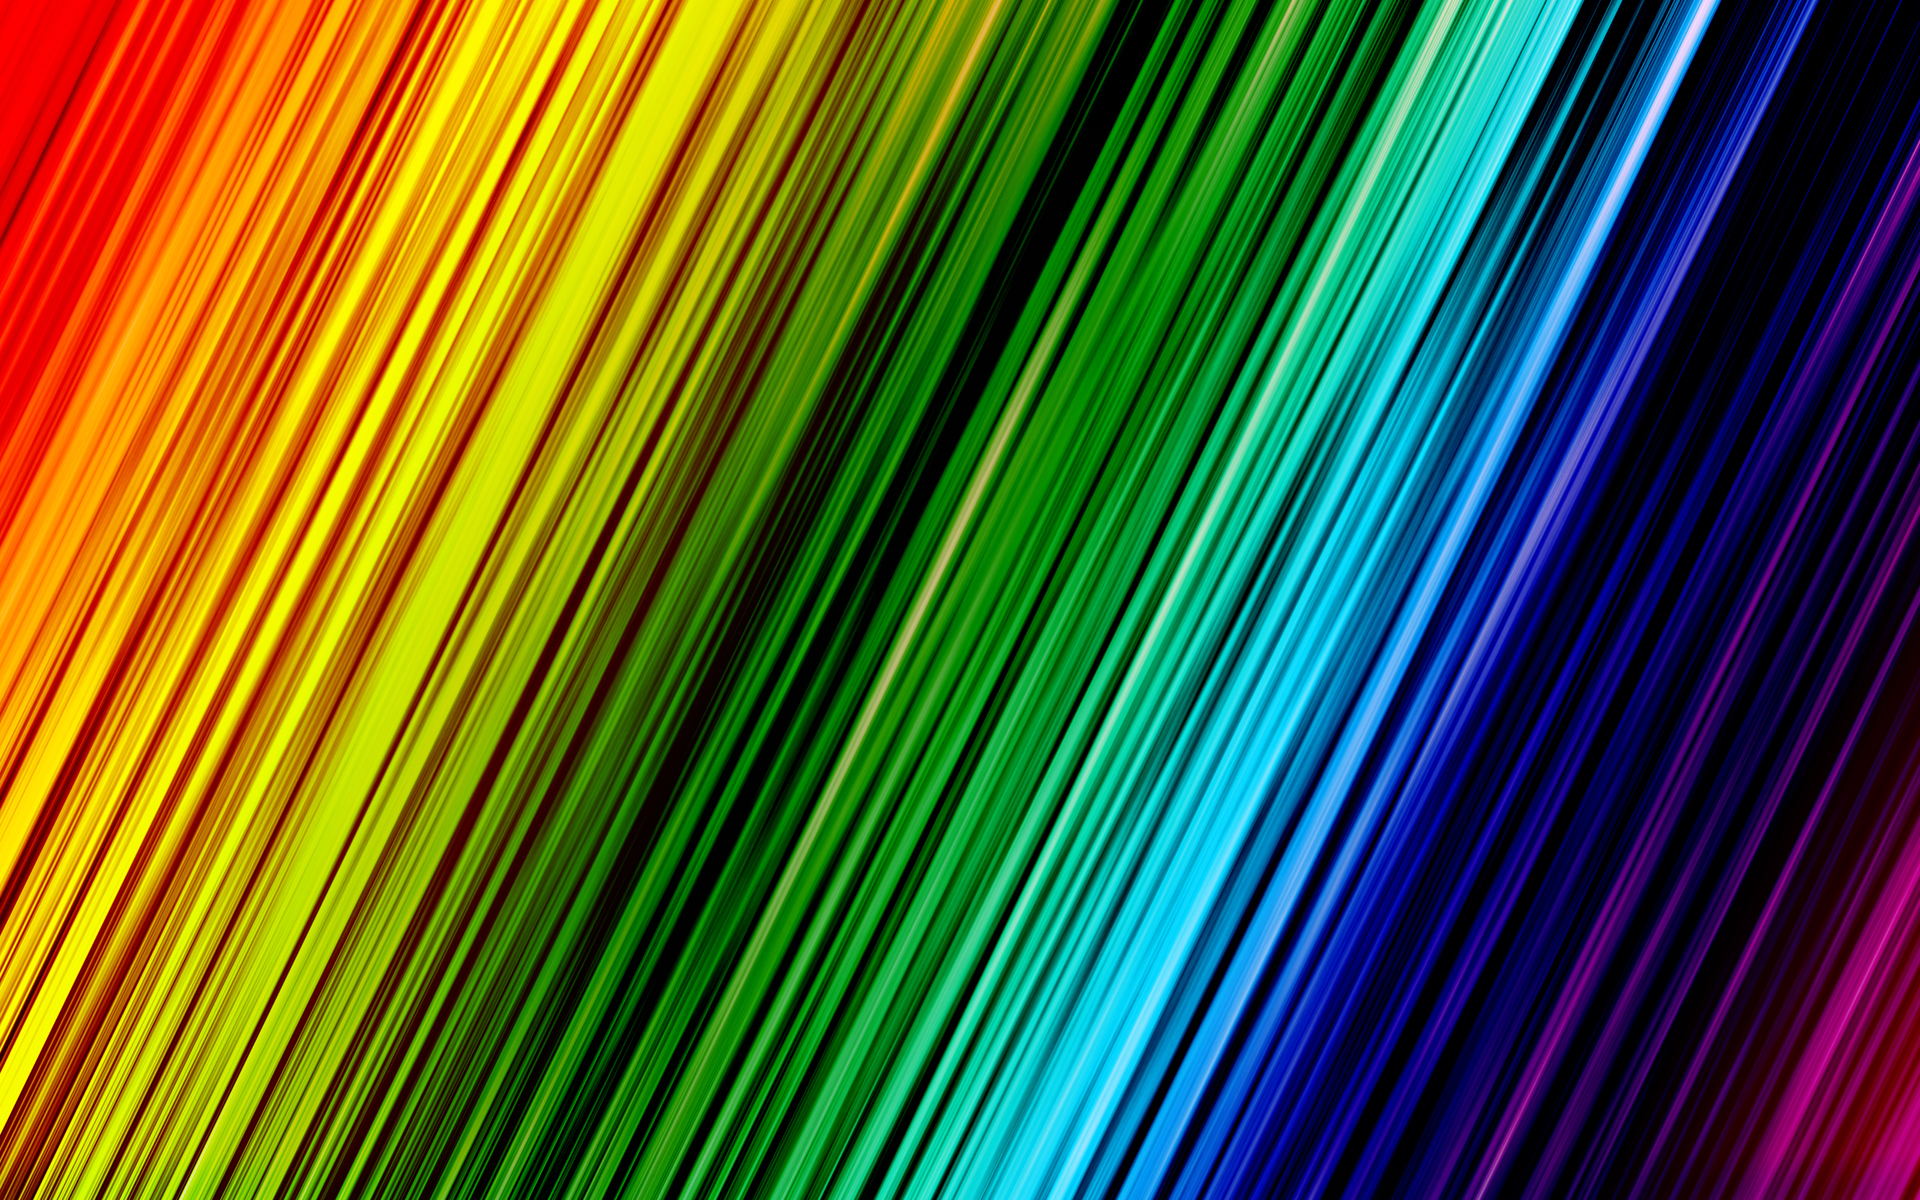 Rainbow Background Wallpaper - WallpaperSafari